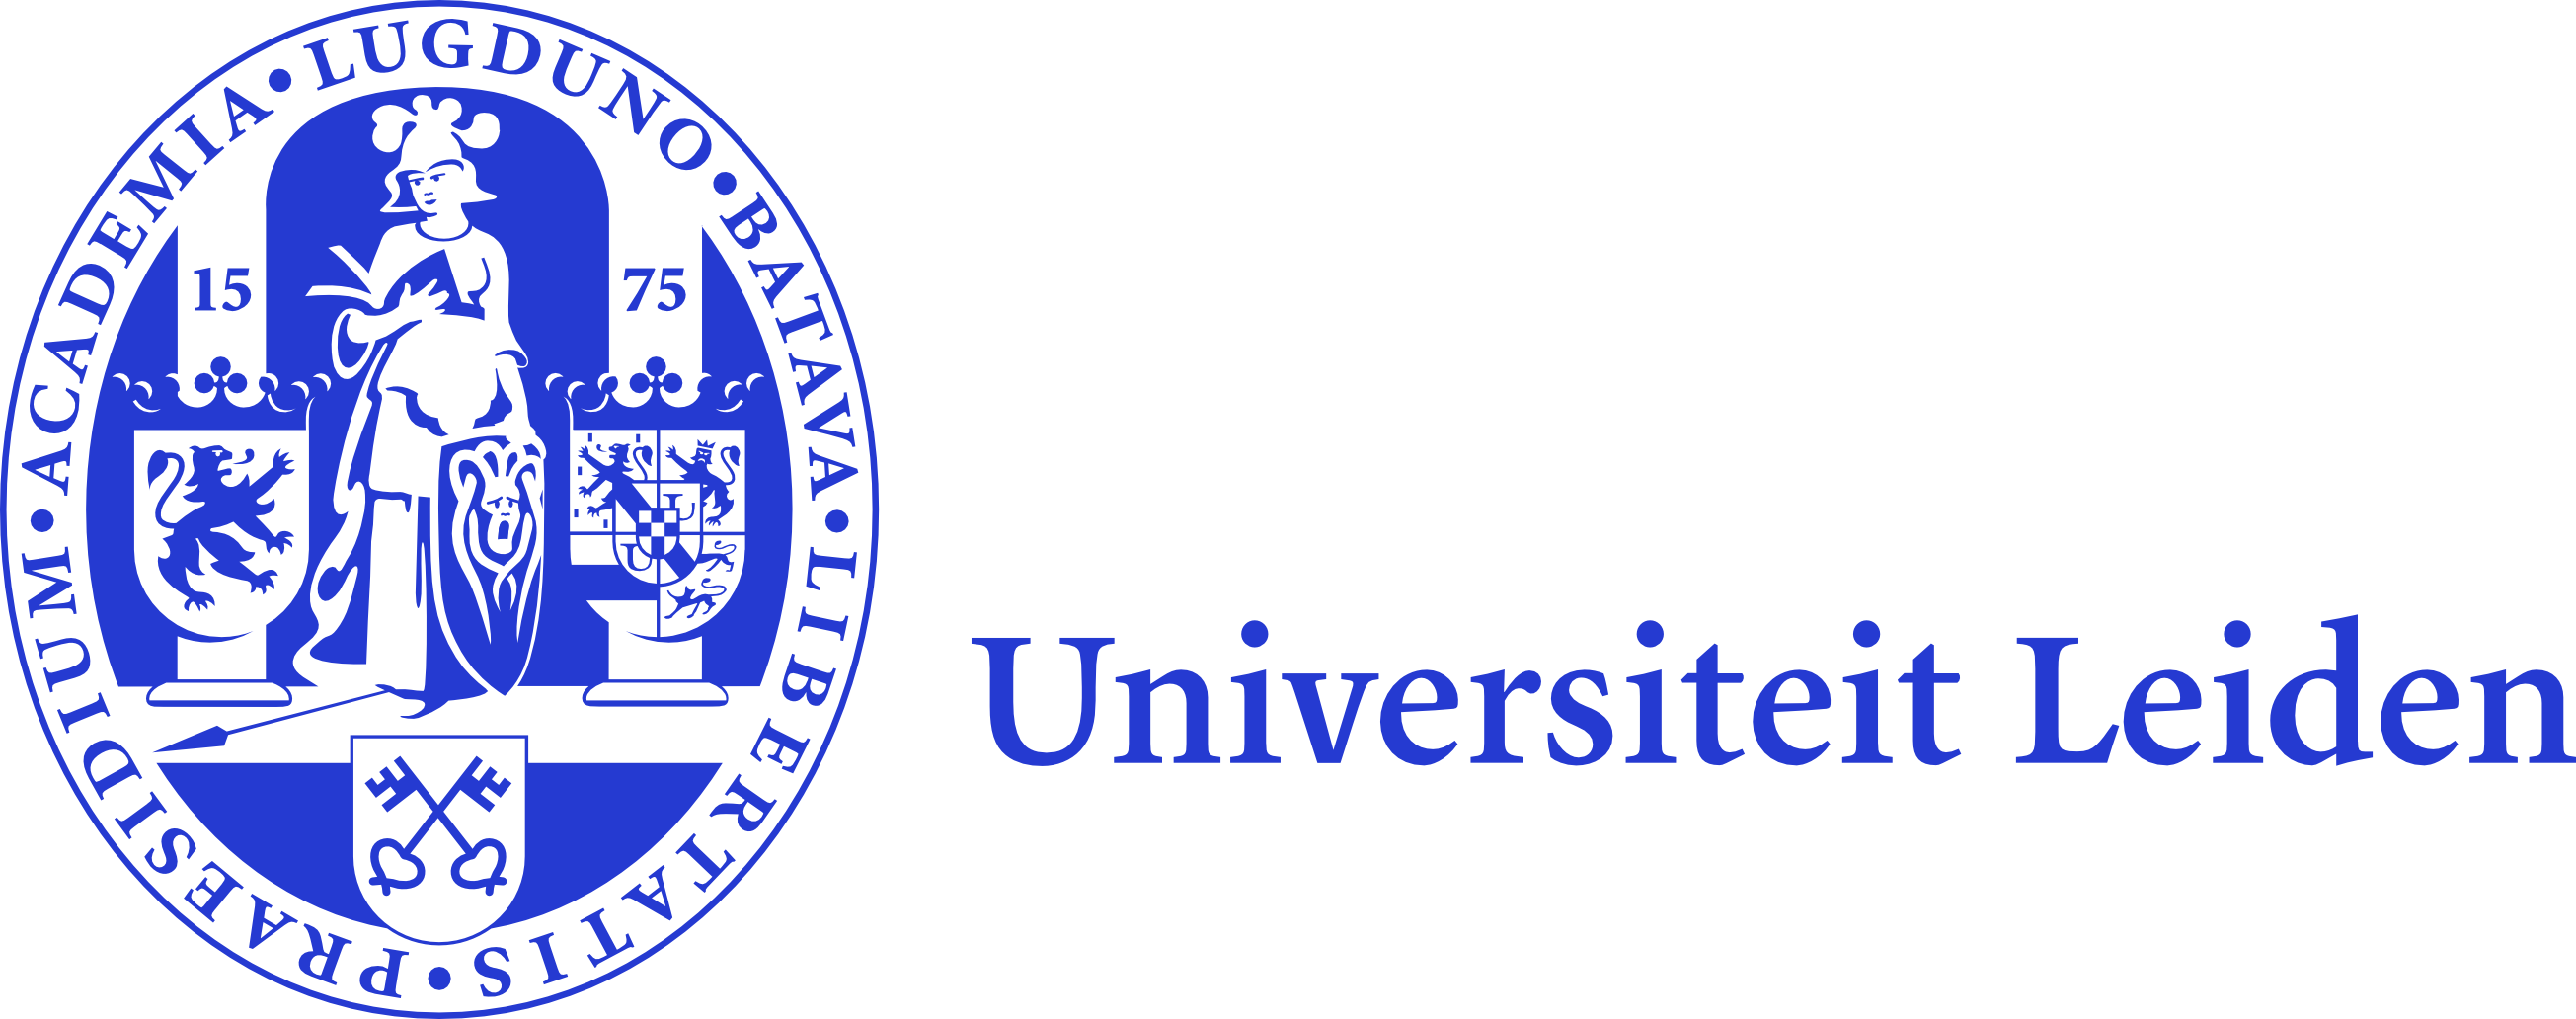 Leiden University 